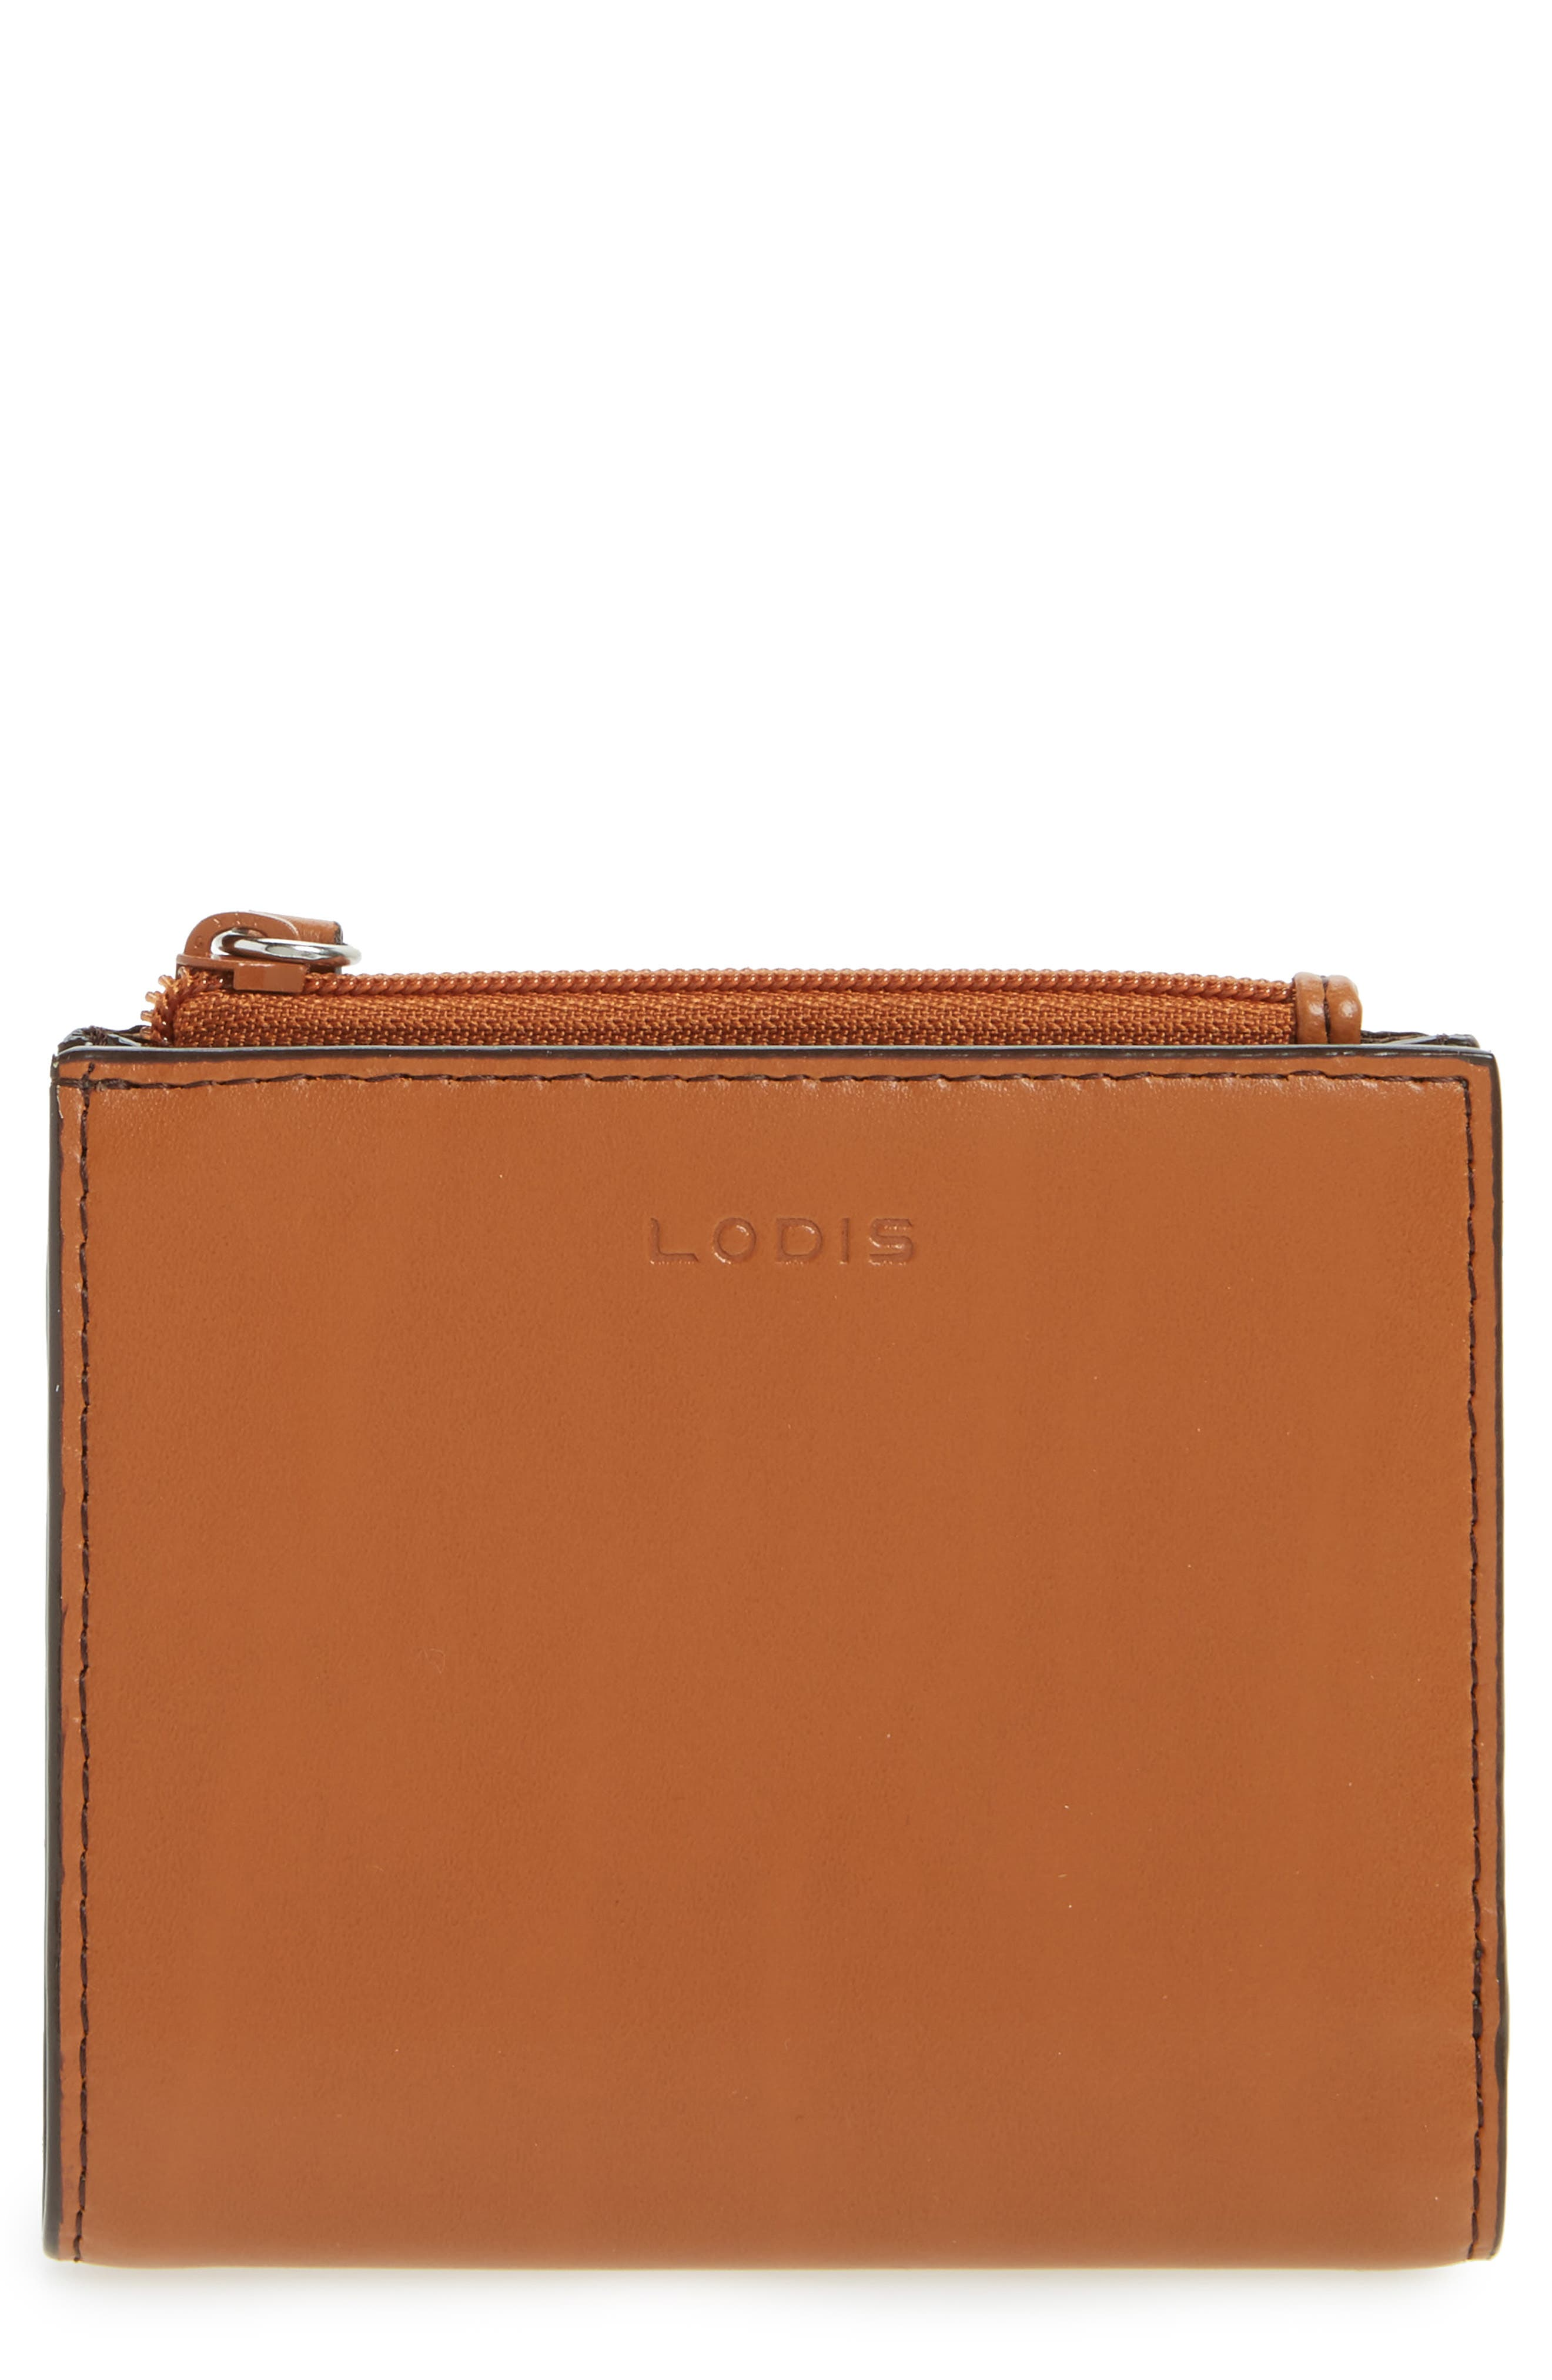 Audrey Under Lock & Key Aldis Leather Wallet,                             Main thumbnail 1, color,                             Toffee